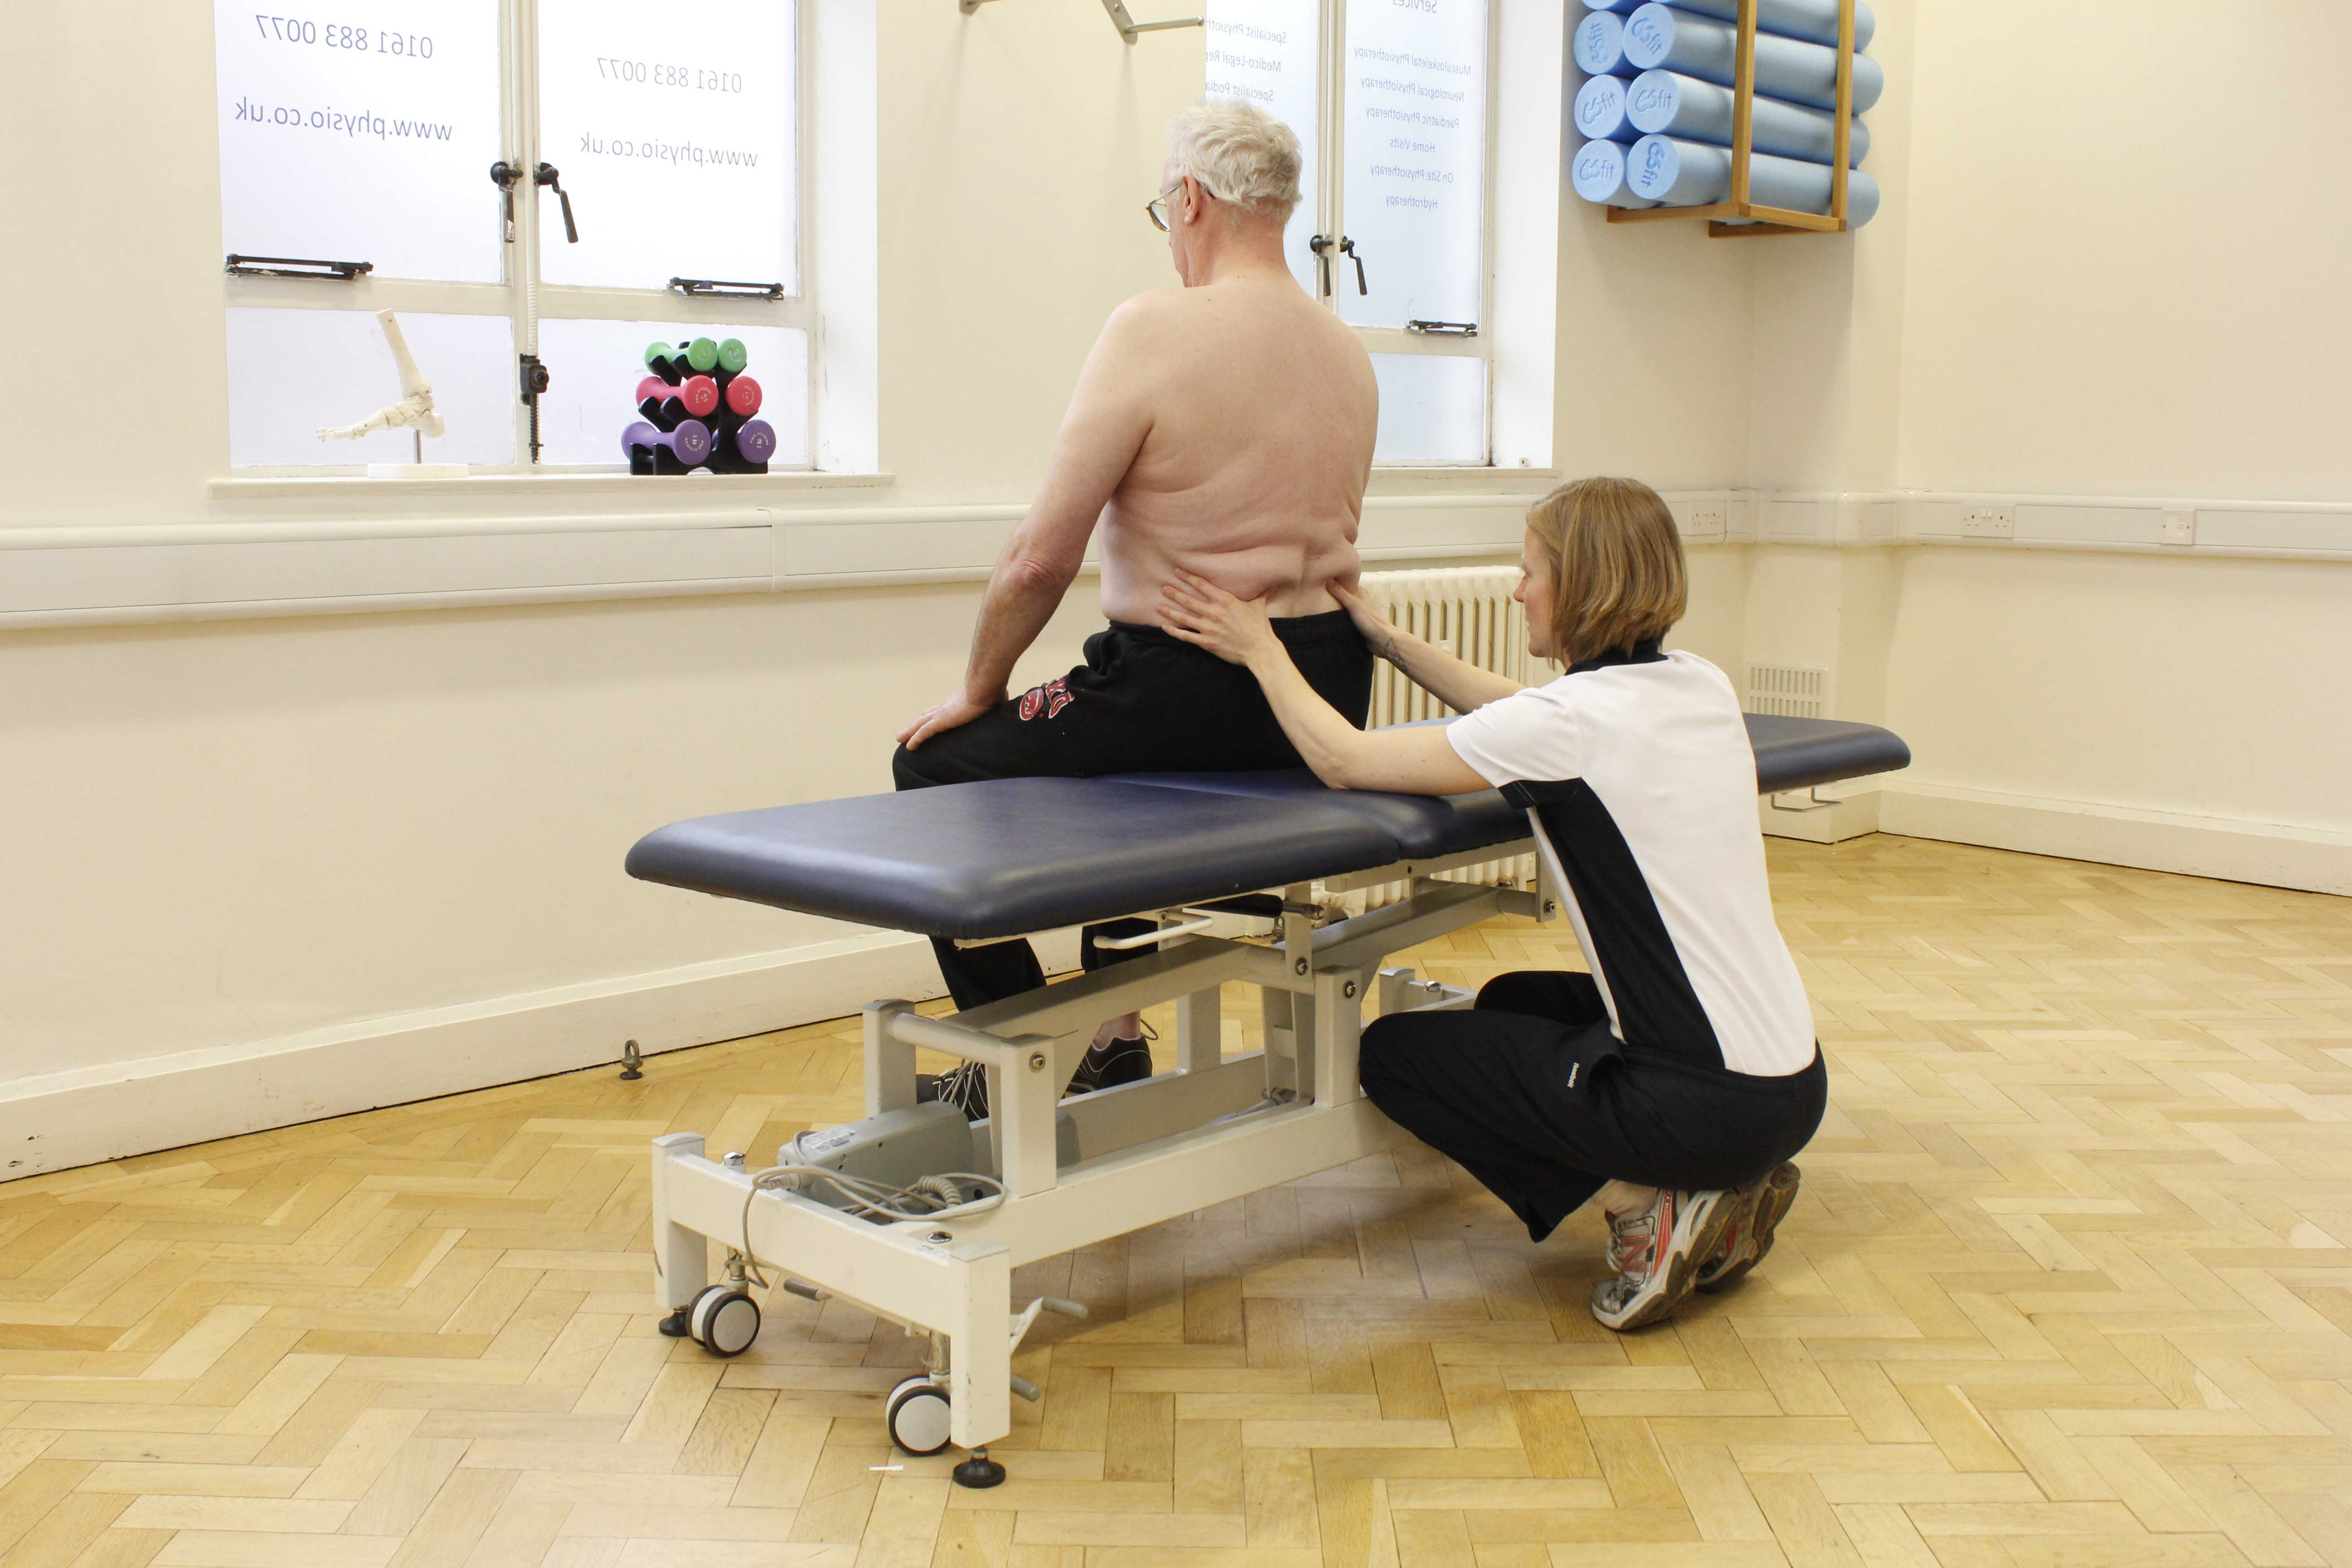 Neurological physiotherapist using passive stretches and mobilisations of the hip, knee and ankle to relieve stiffness